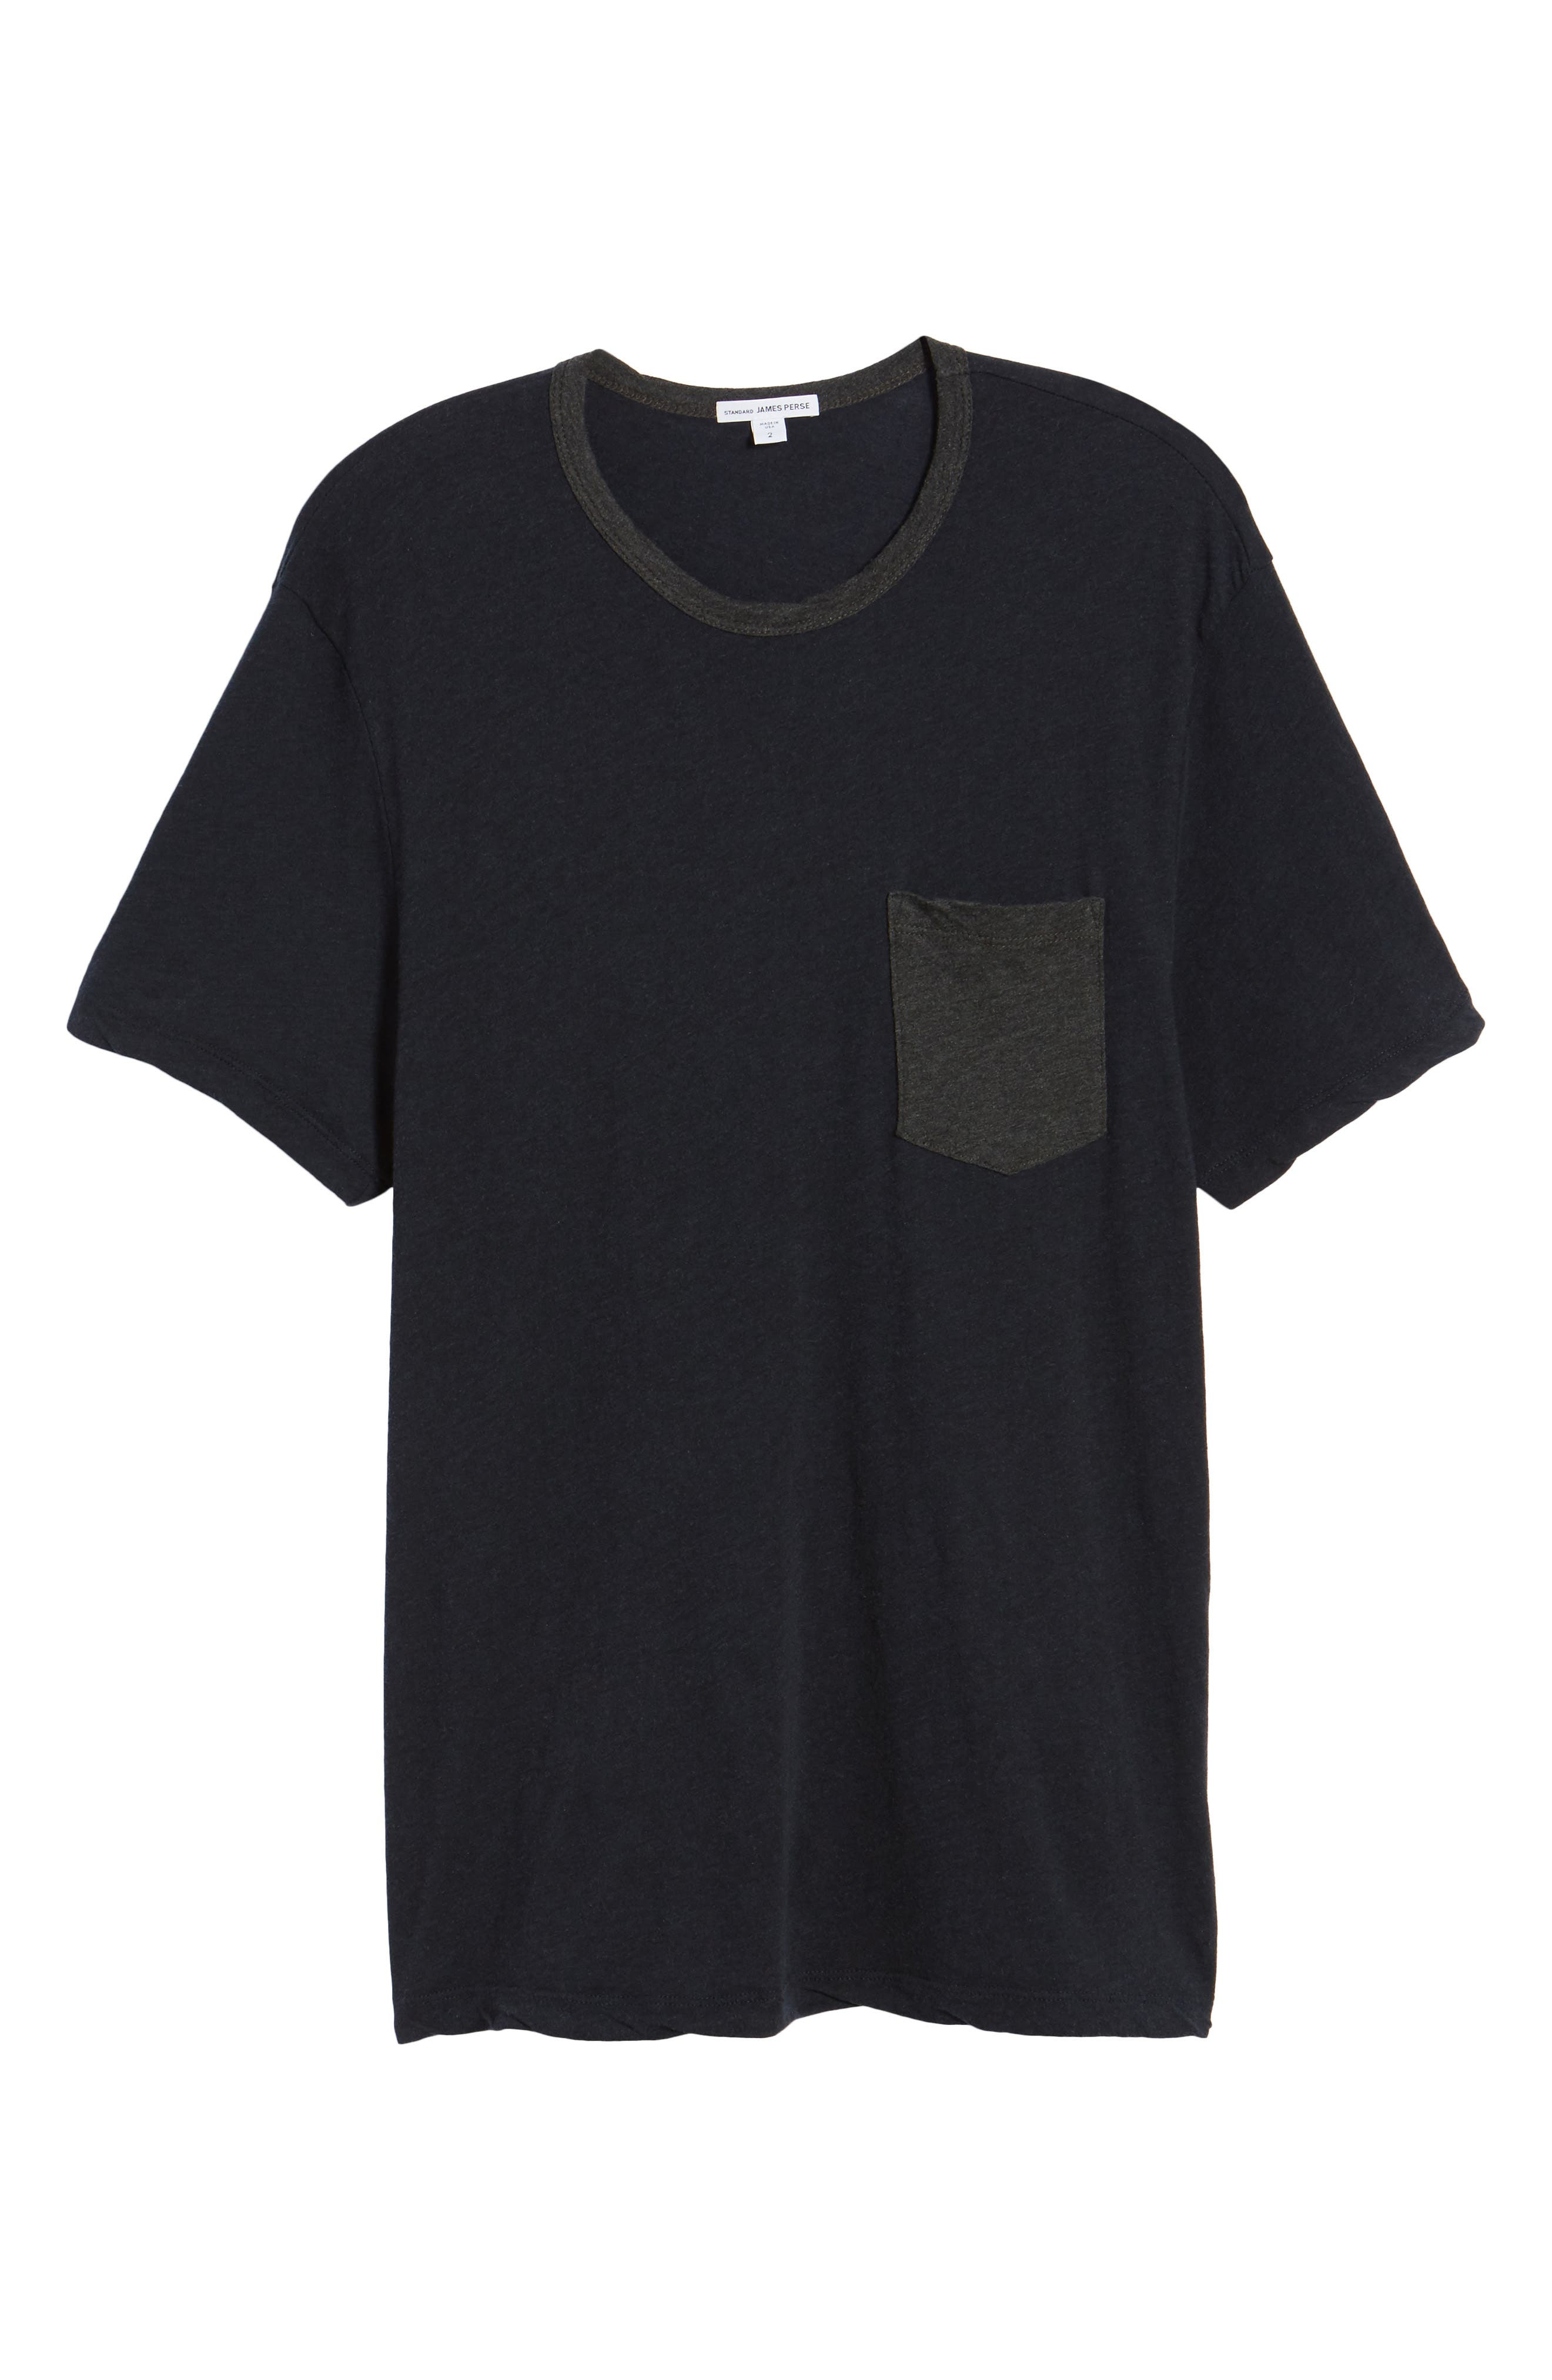 JAMES PERSE,                             Two-Tone Pocket T-Shirt,                             Alternate thumbnail 6, color,                             001